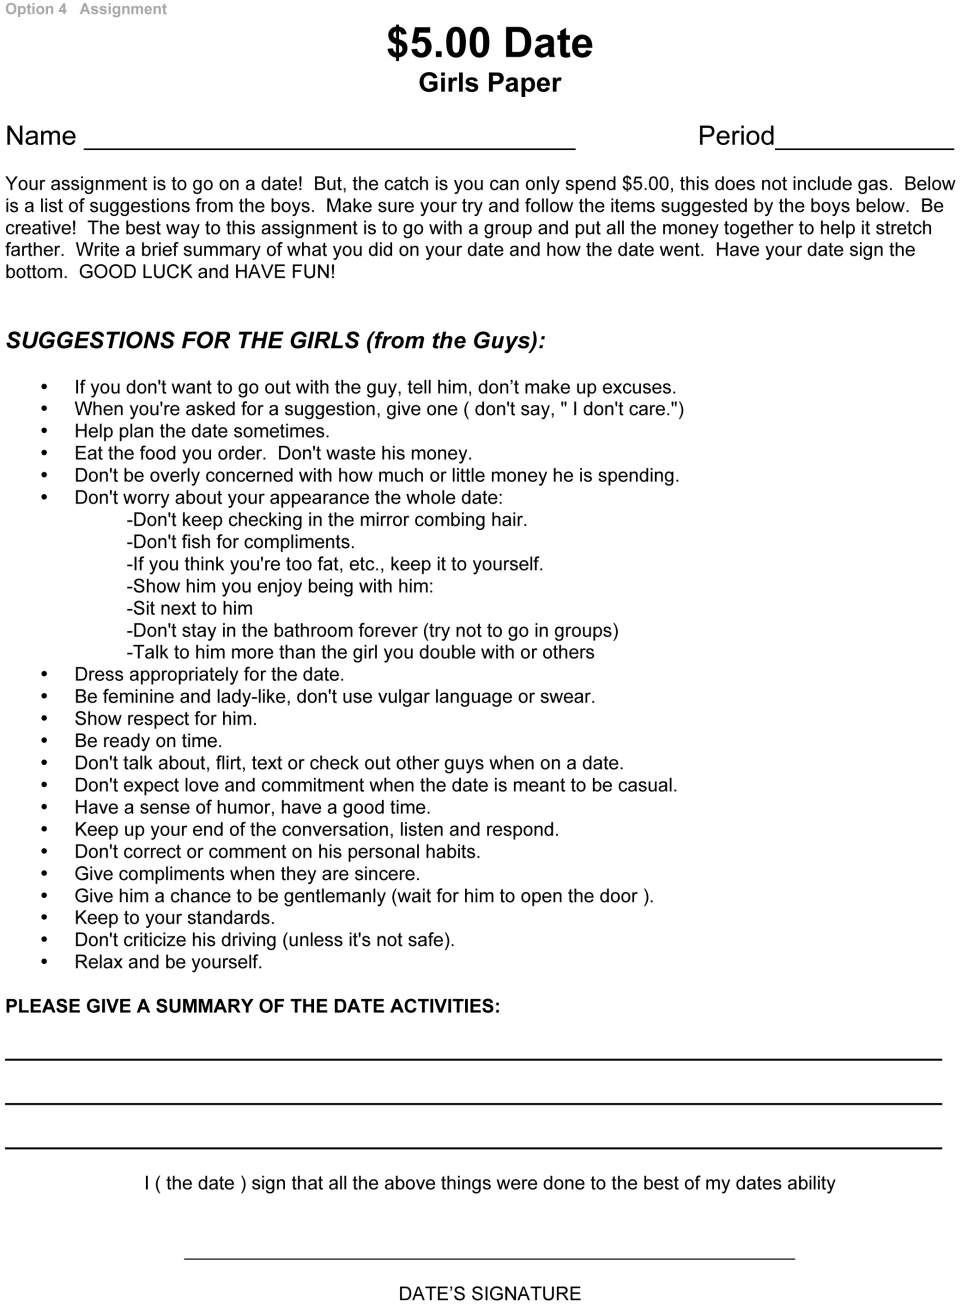 Don't waste his money': Utah high school assignment on dating ...